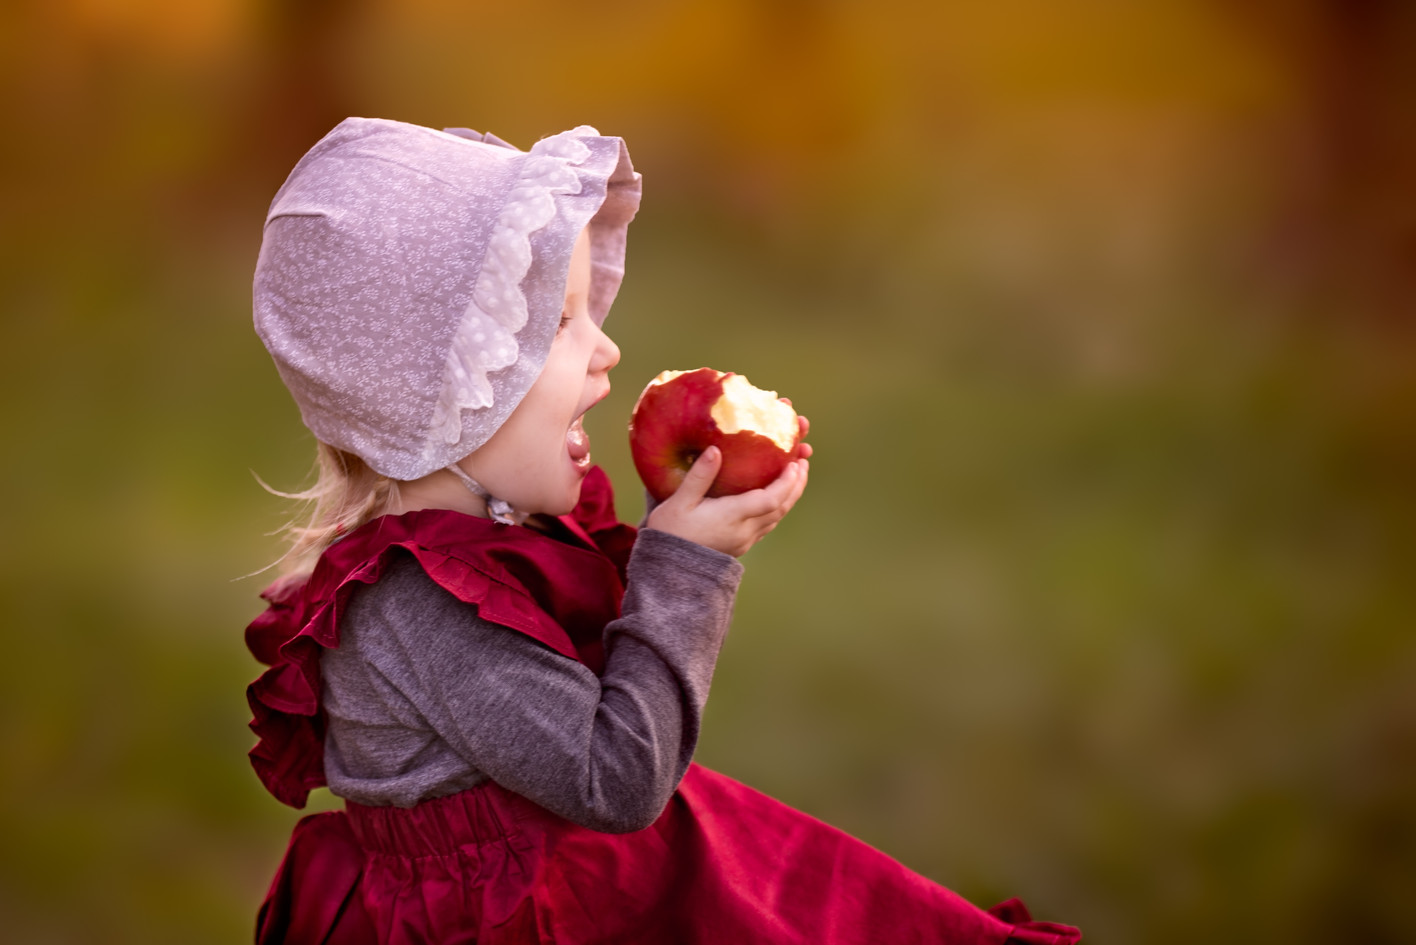 Old fashioned toddler eating an apple portrait